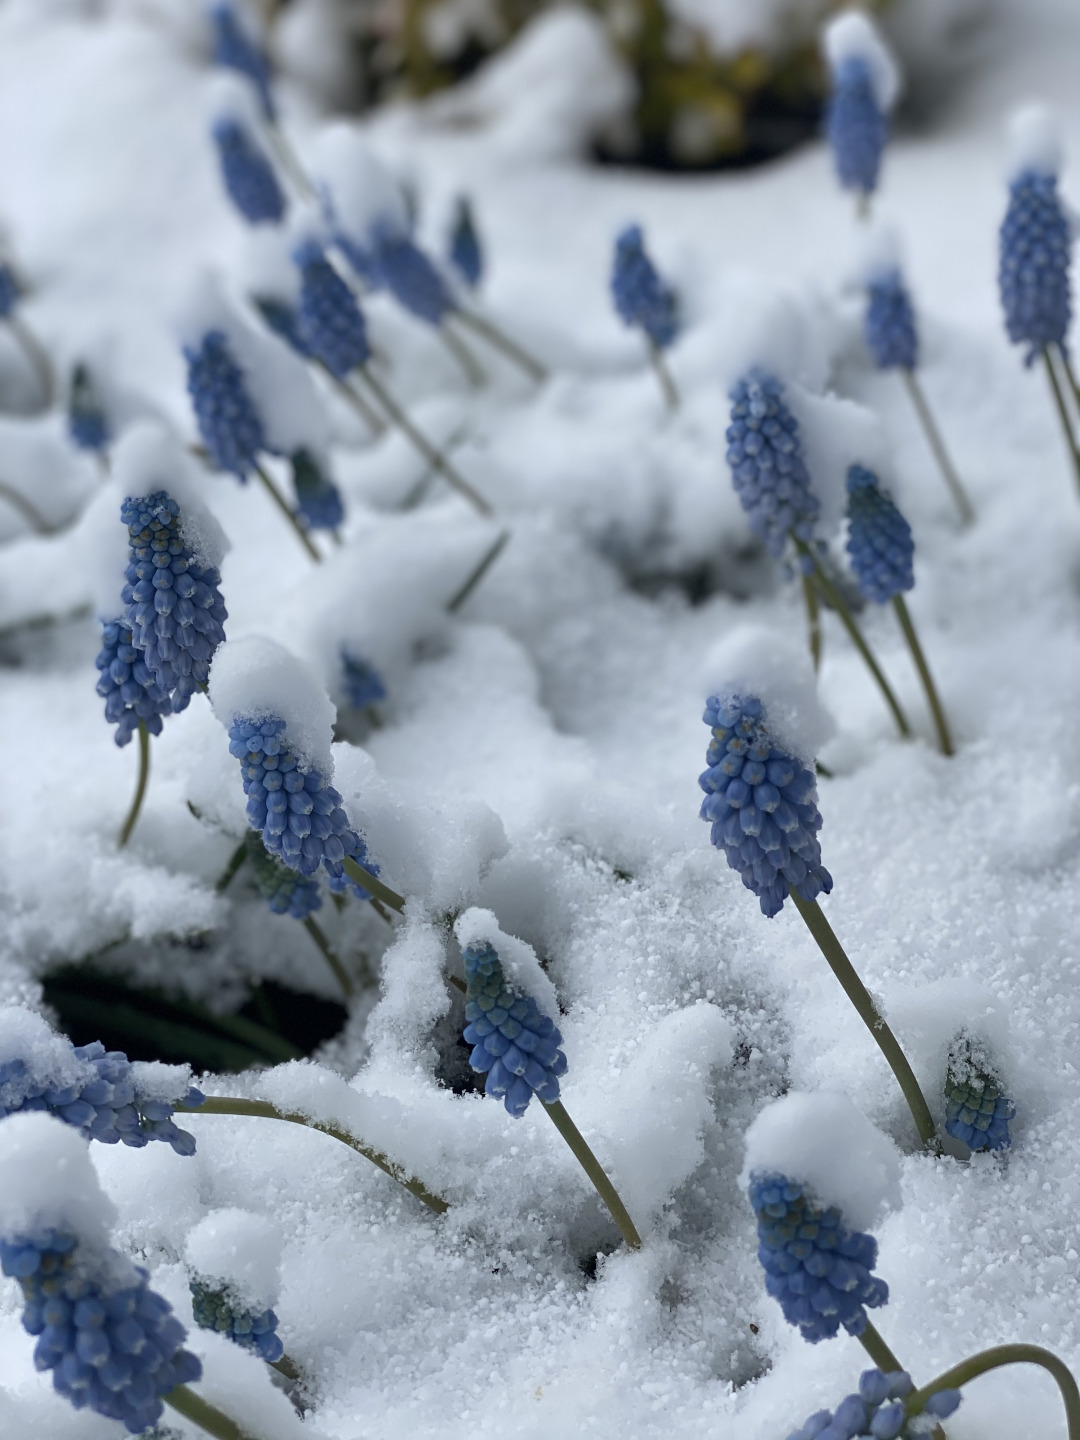 Pale blue flowers sticking out of snow